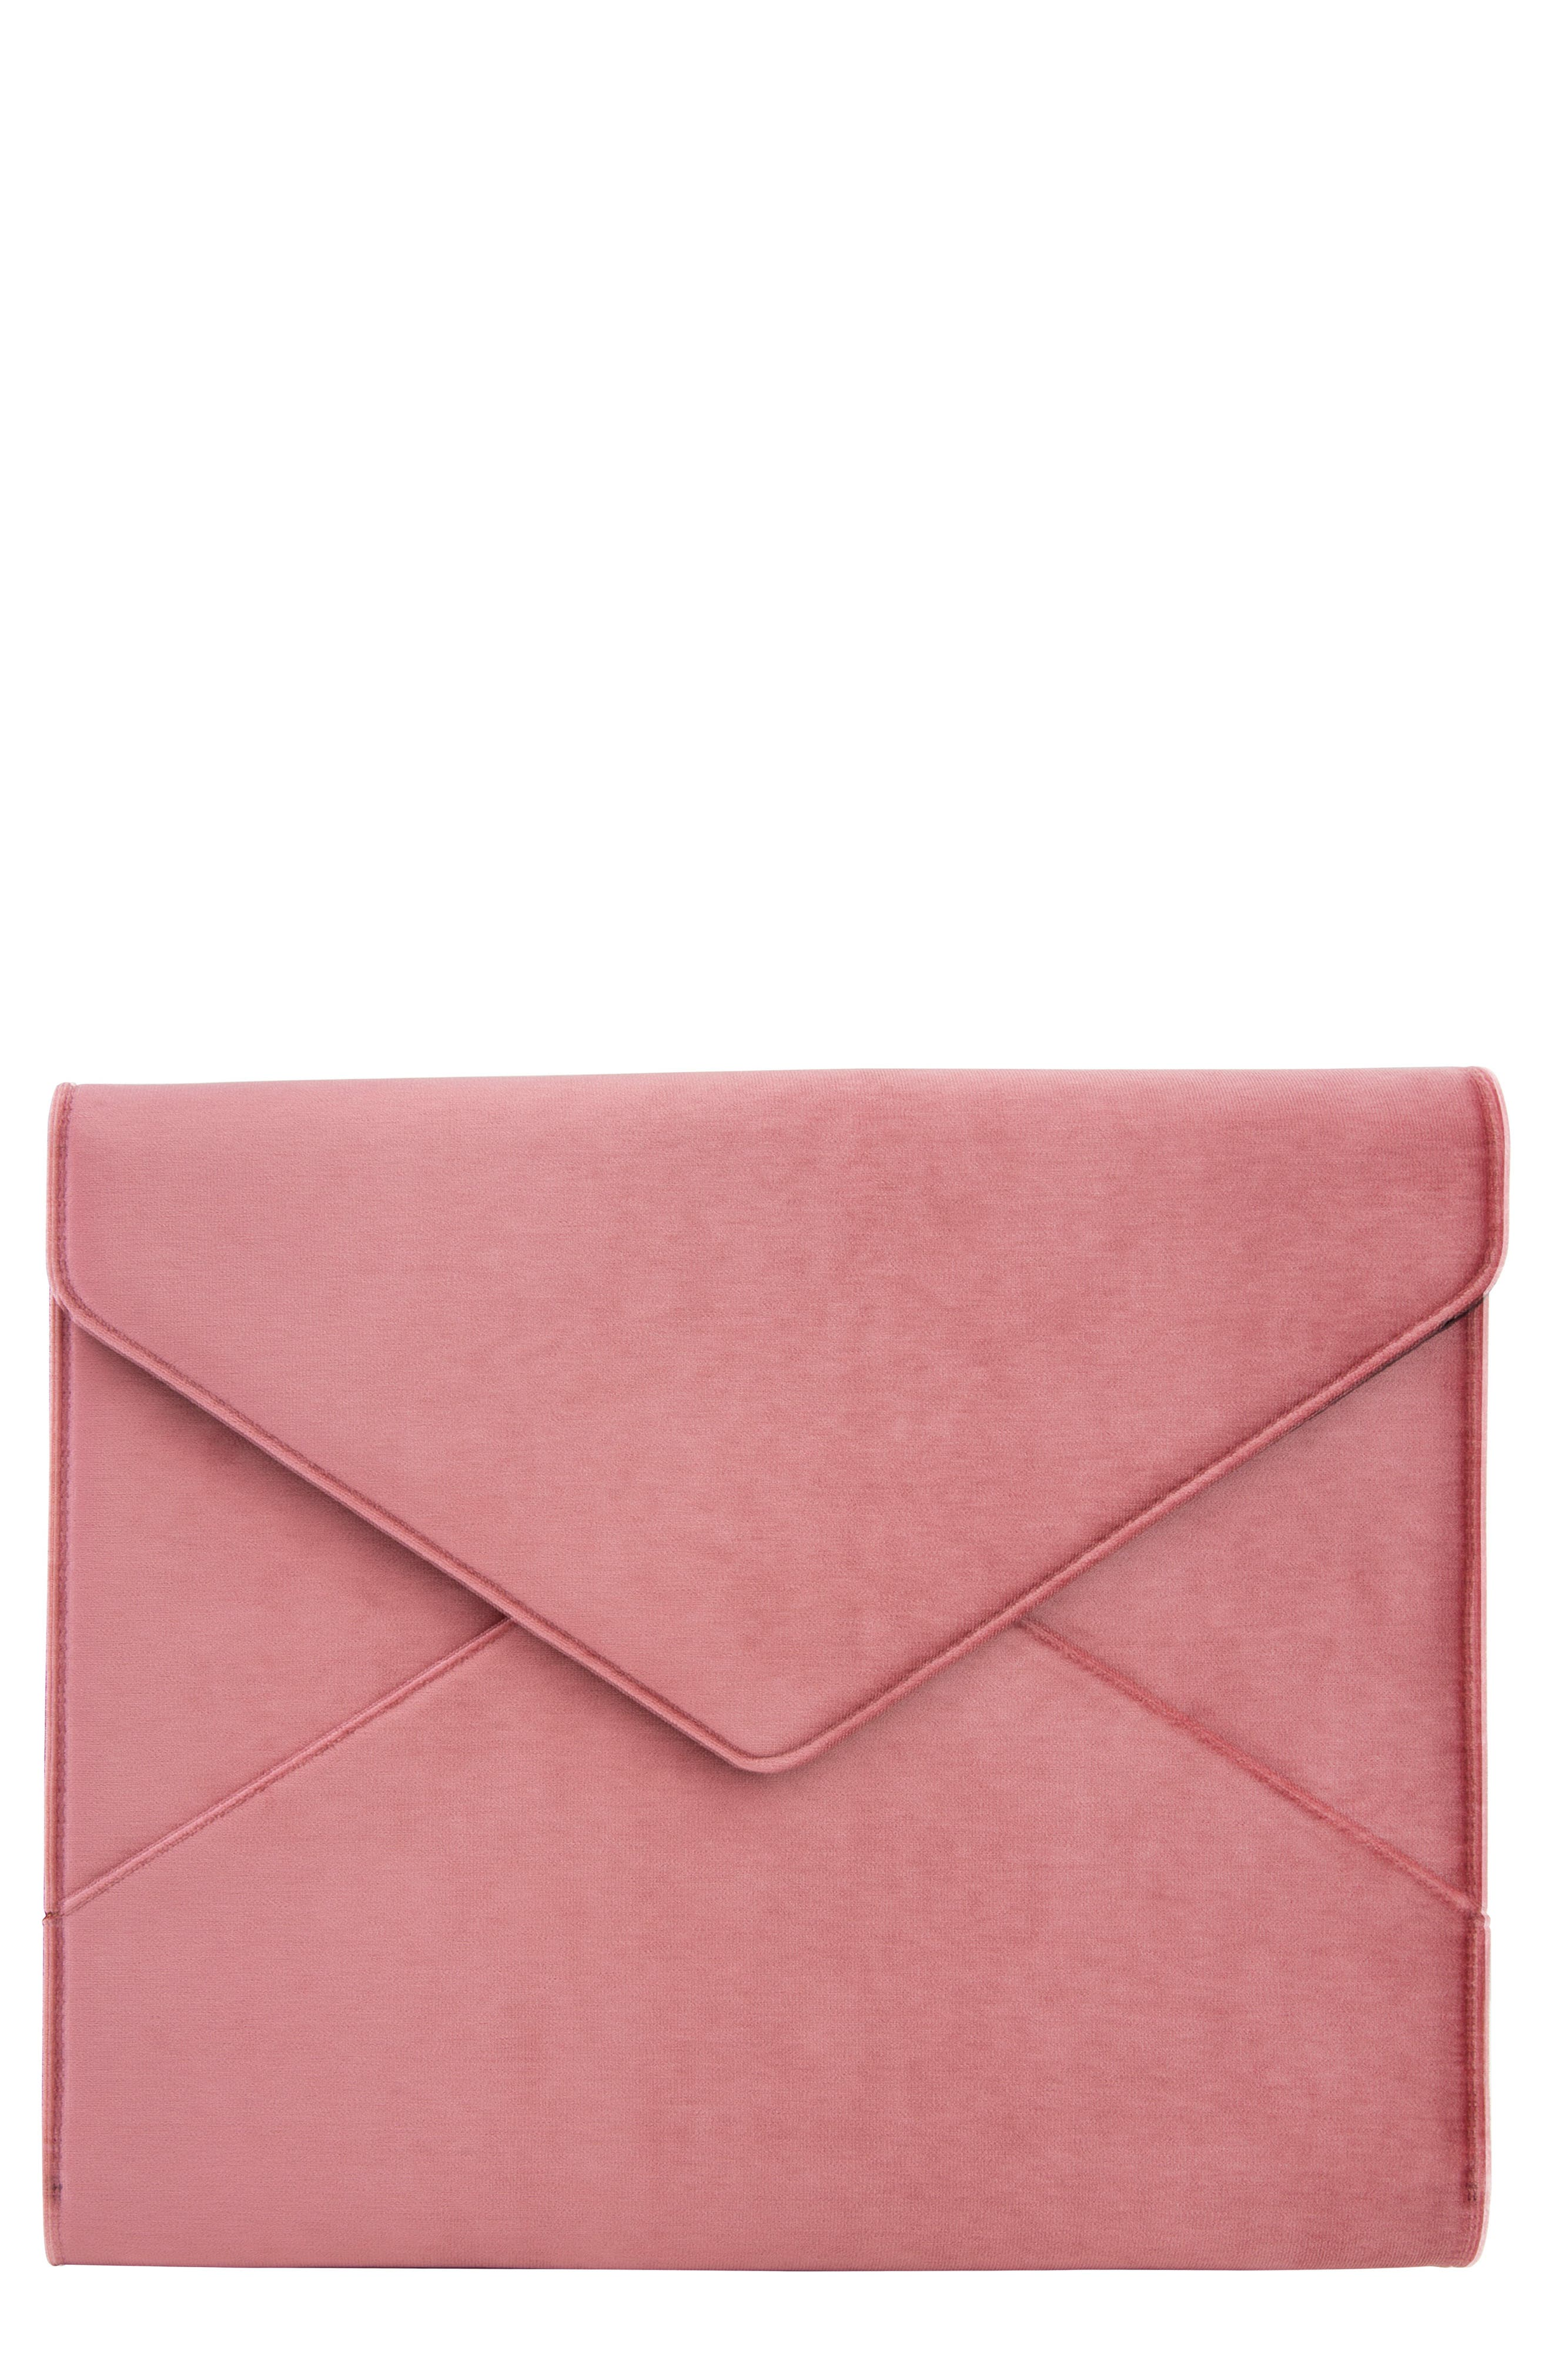 Alternate Image 1 Selected - Sonix Rose Velvet Laptop Clutch